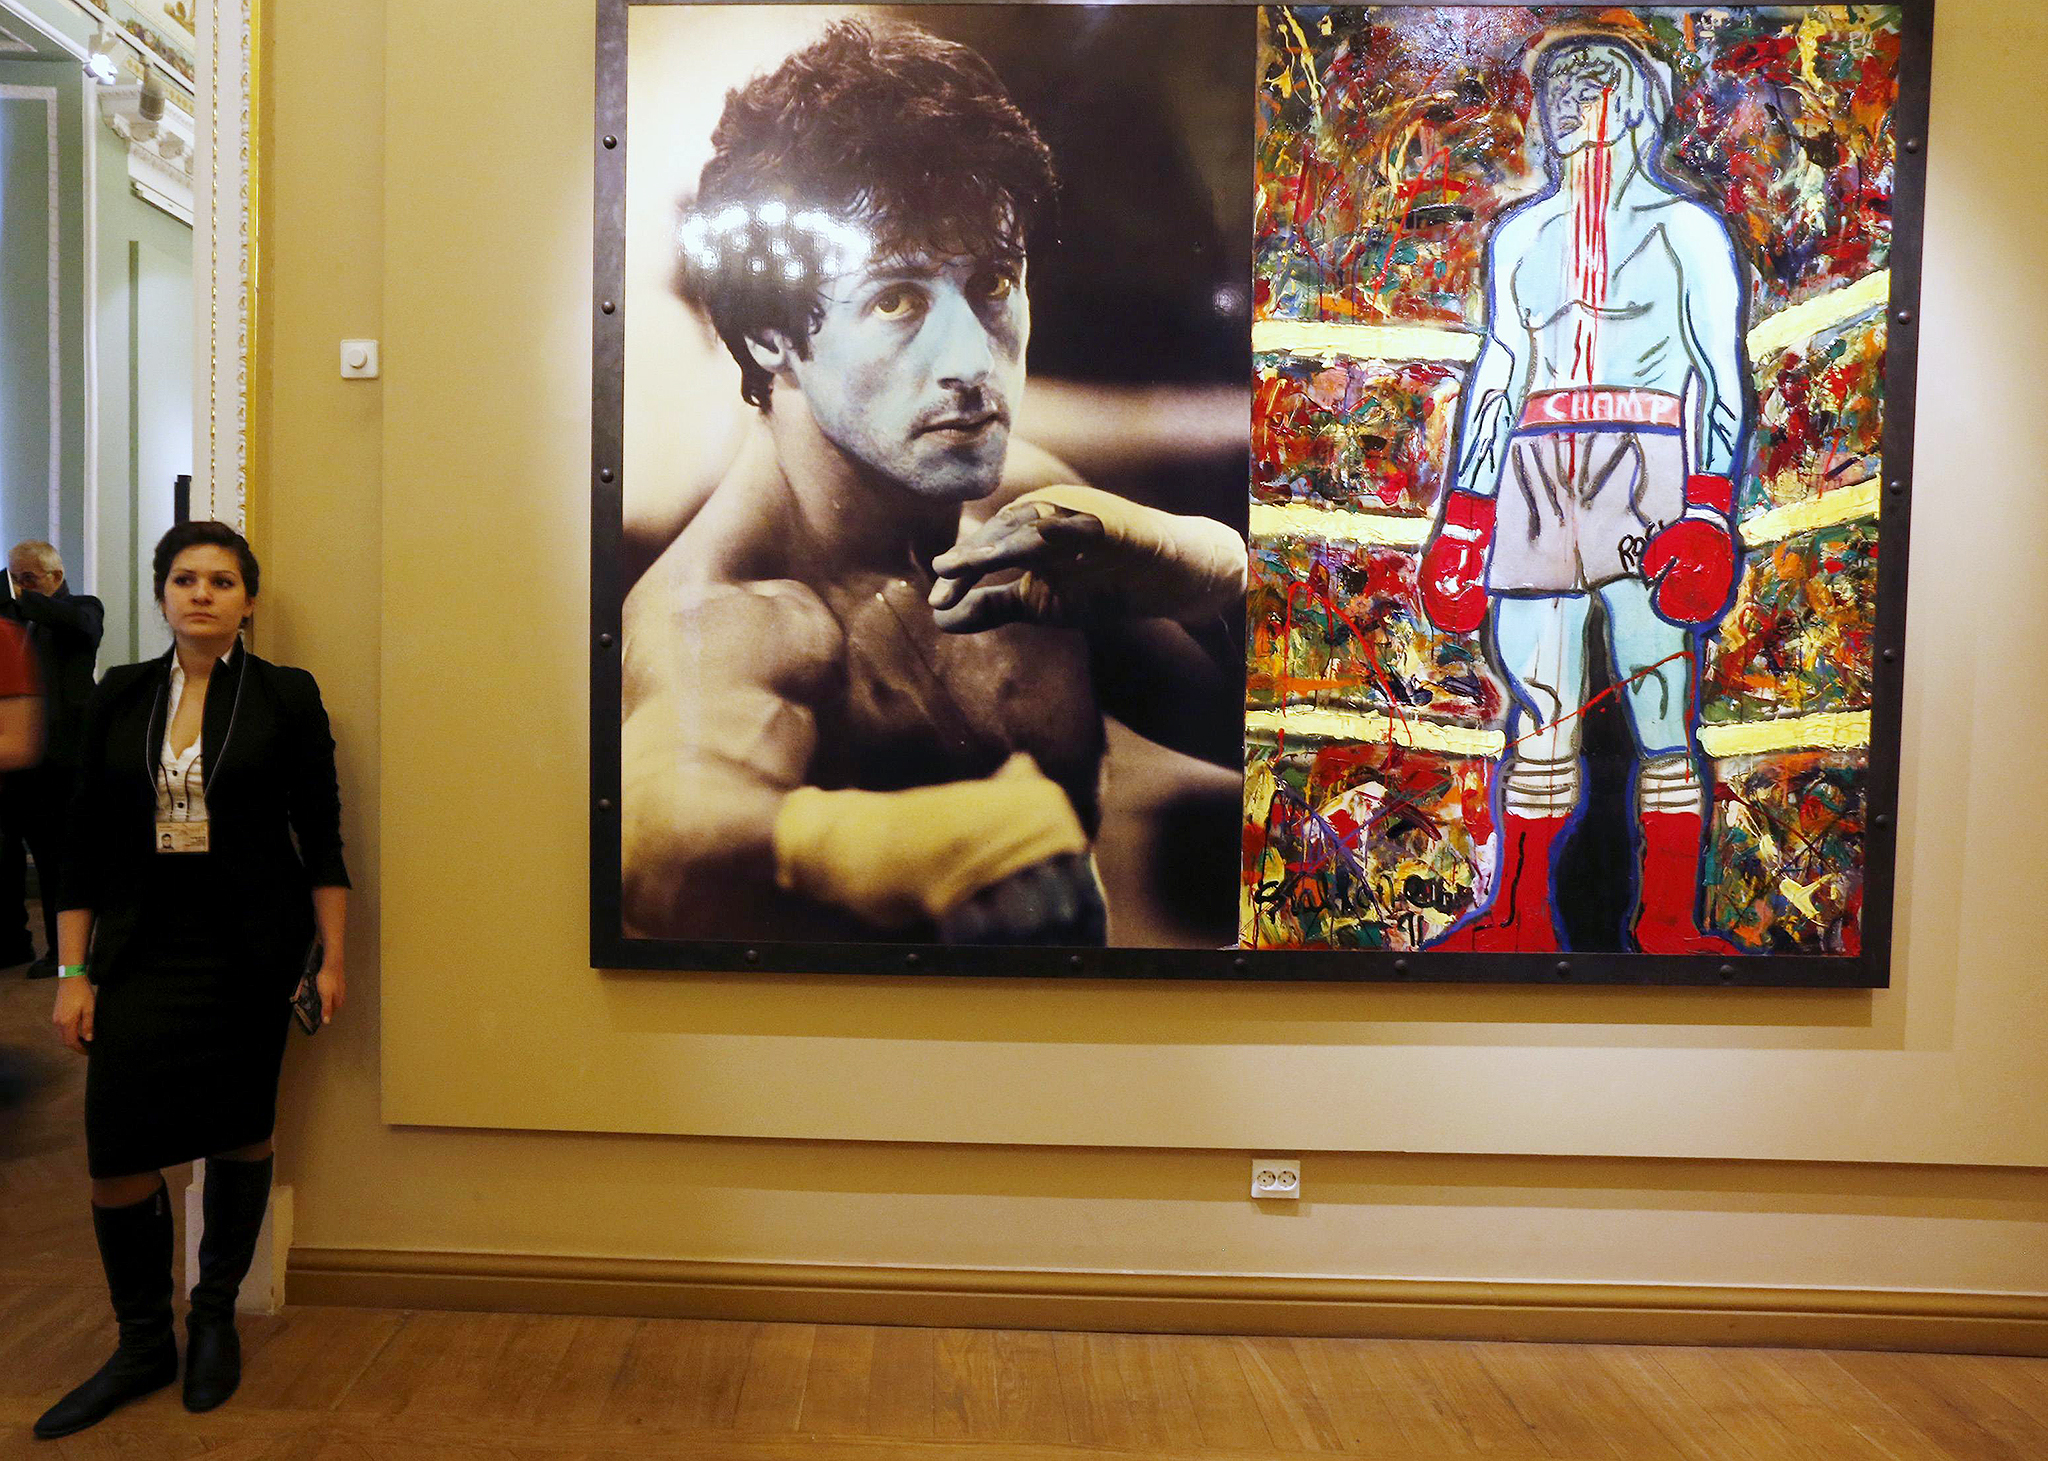 More of Stallone's artwork on display. (Reuters)